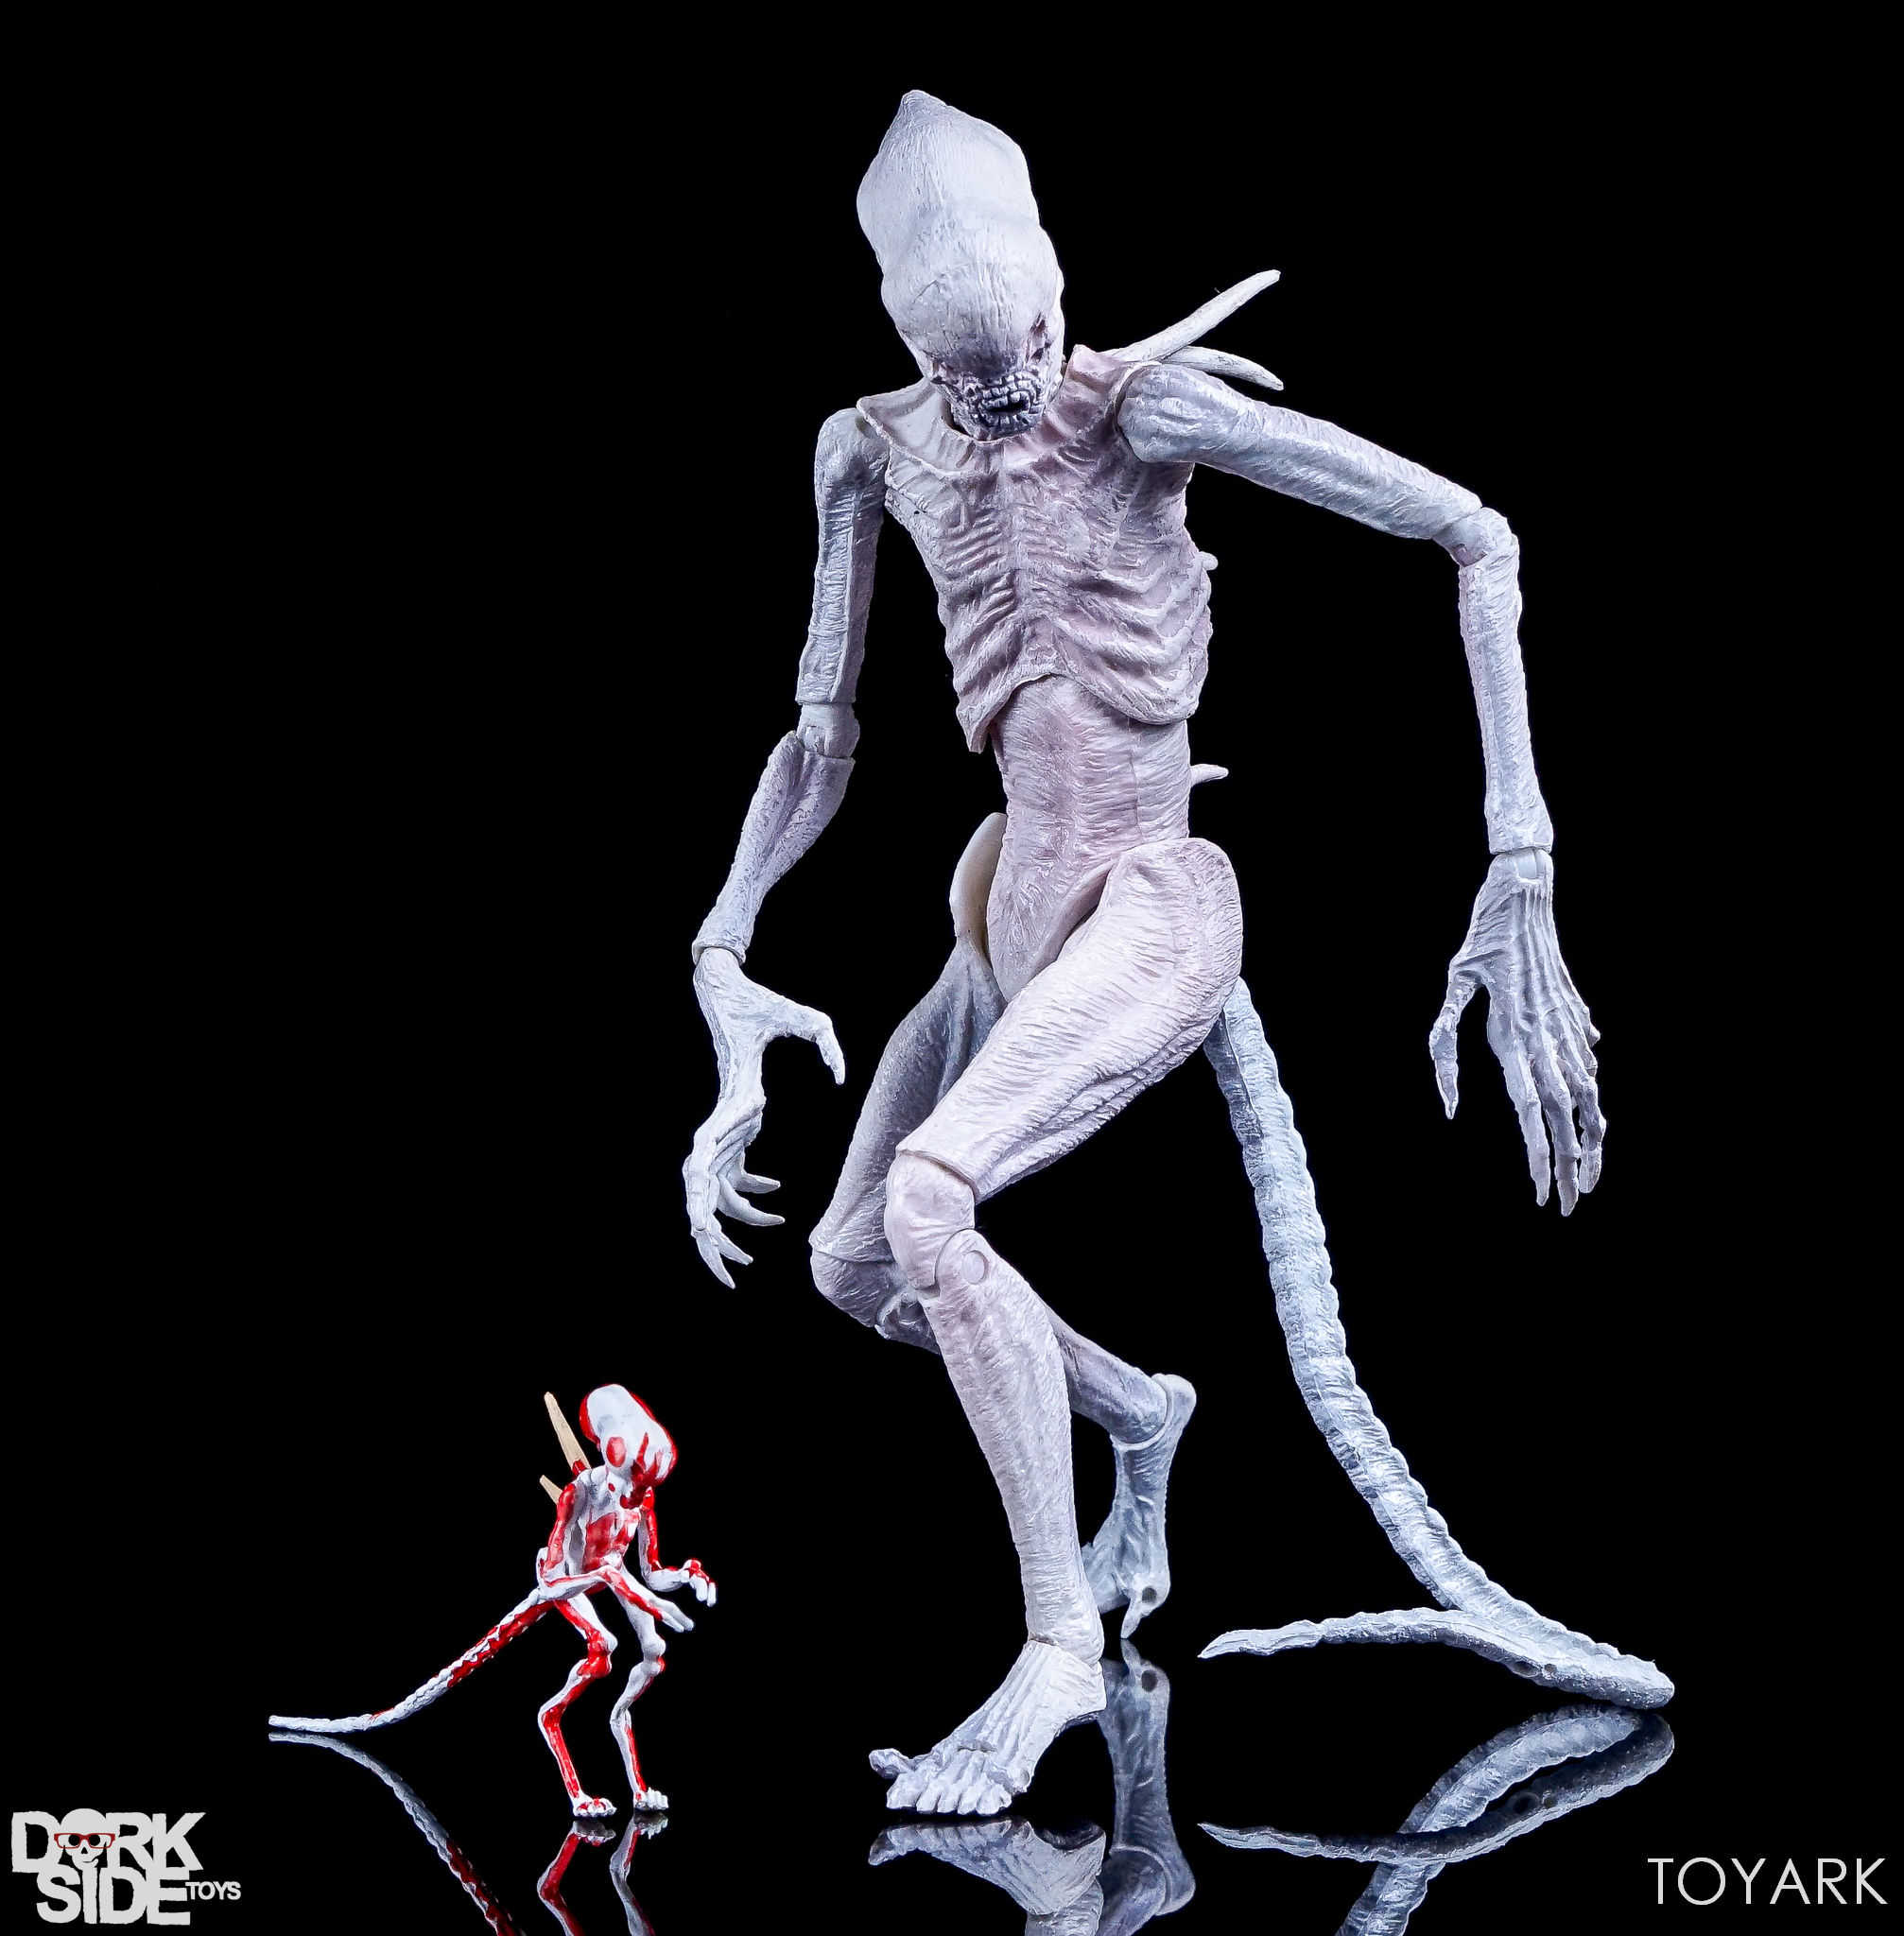 http://news.toyark.com/wp-content/uploads/sites/4/2017/08/NECA-Alien-Covenant-Figures-023.jpg